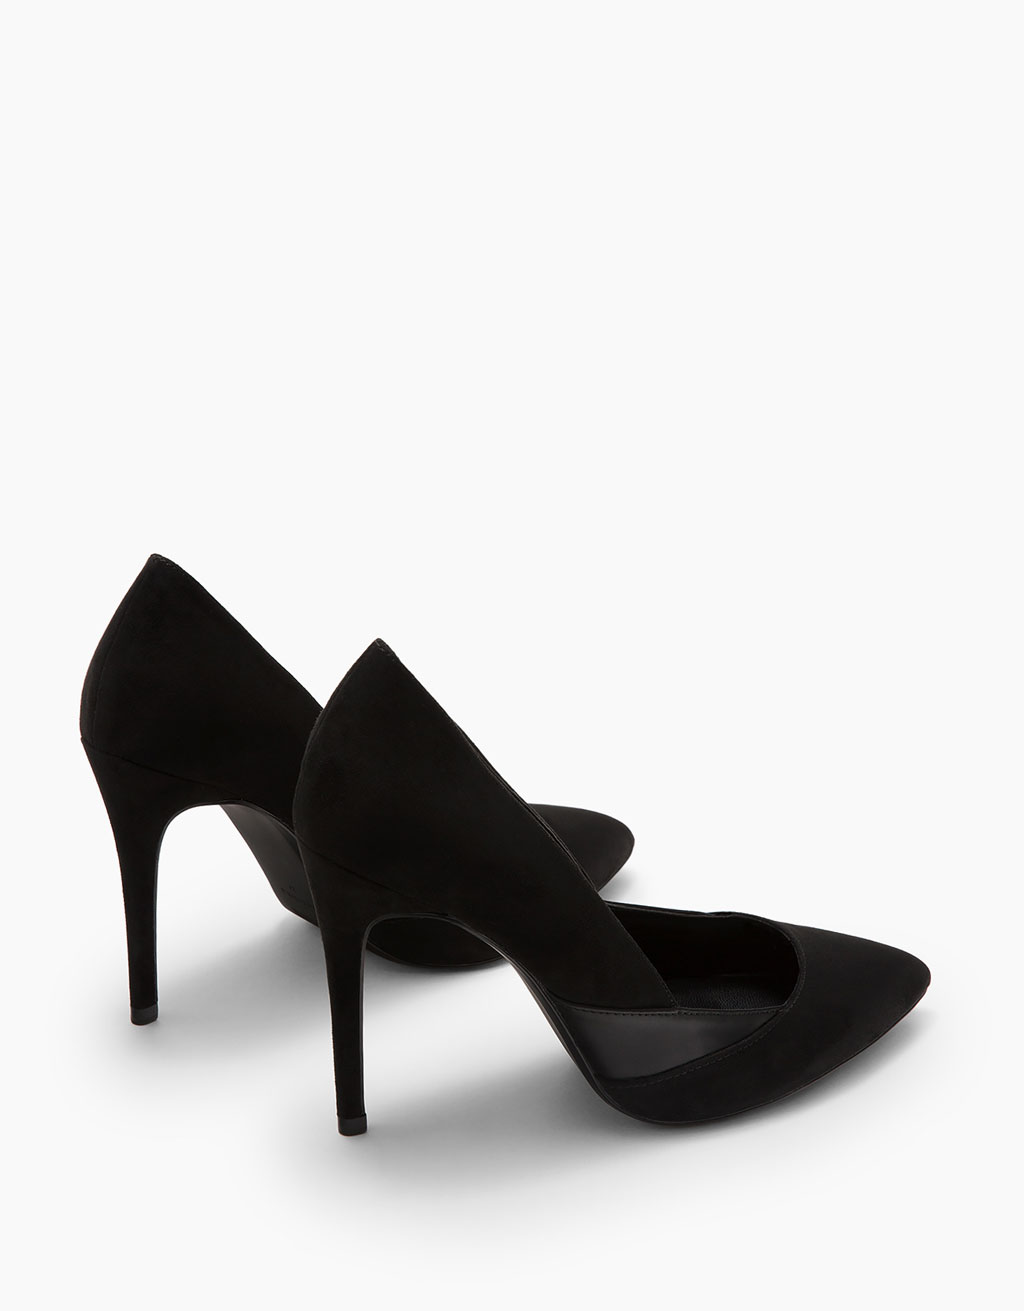 Combined stiletto heel shoes